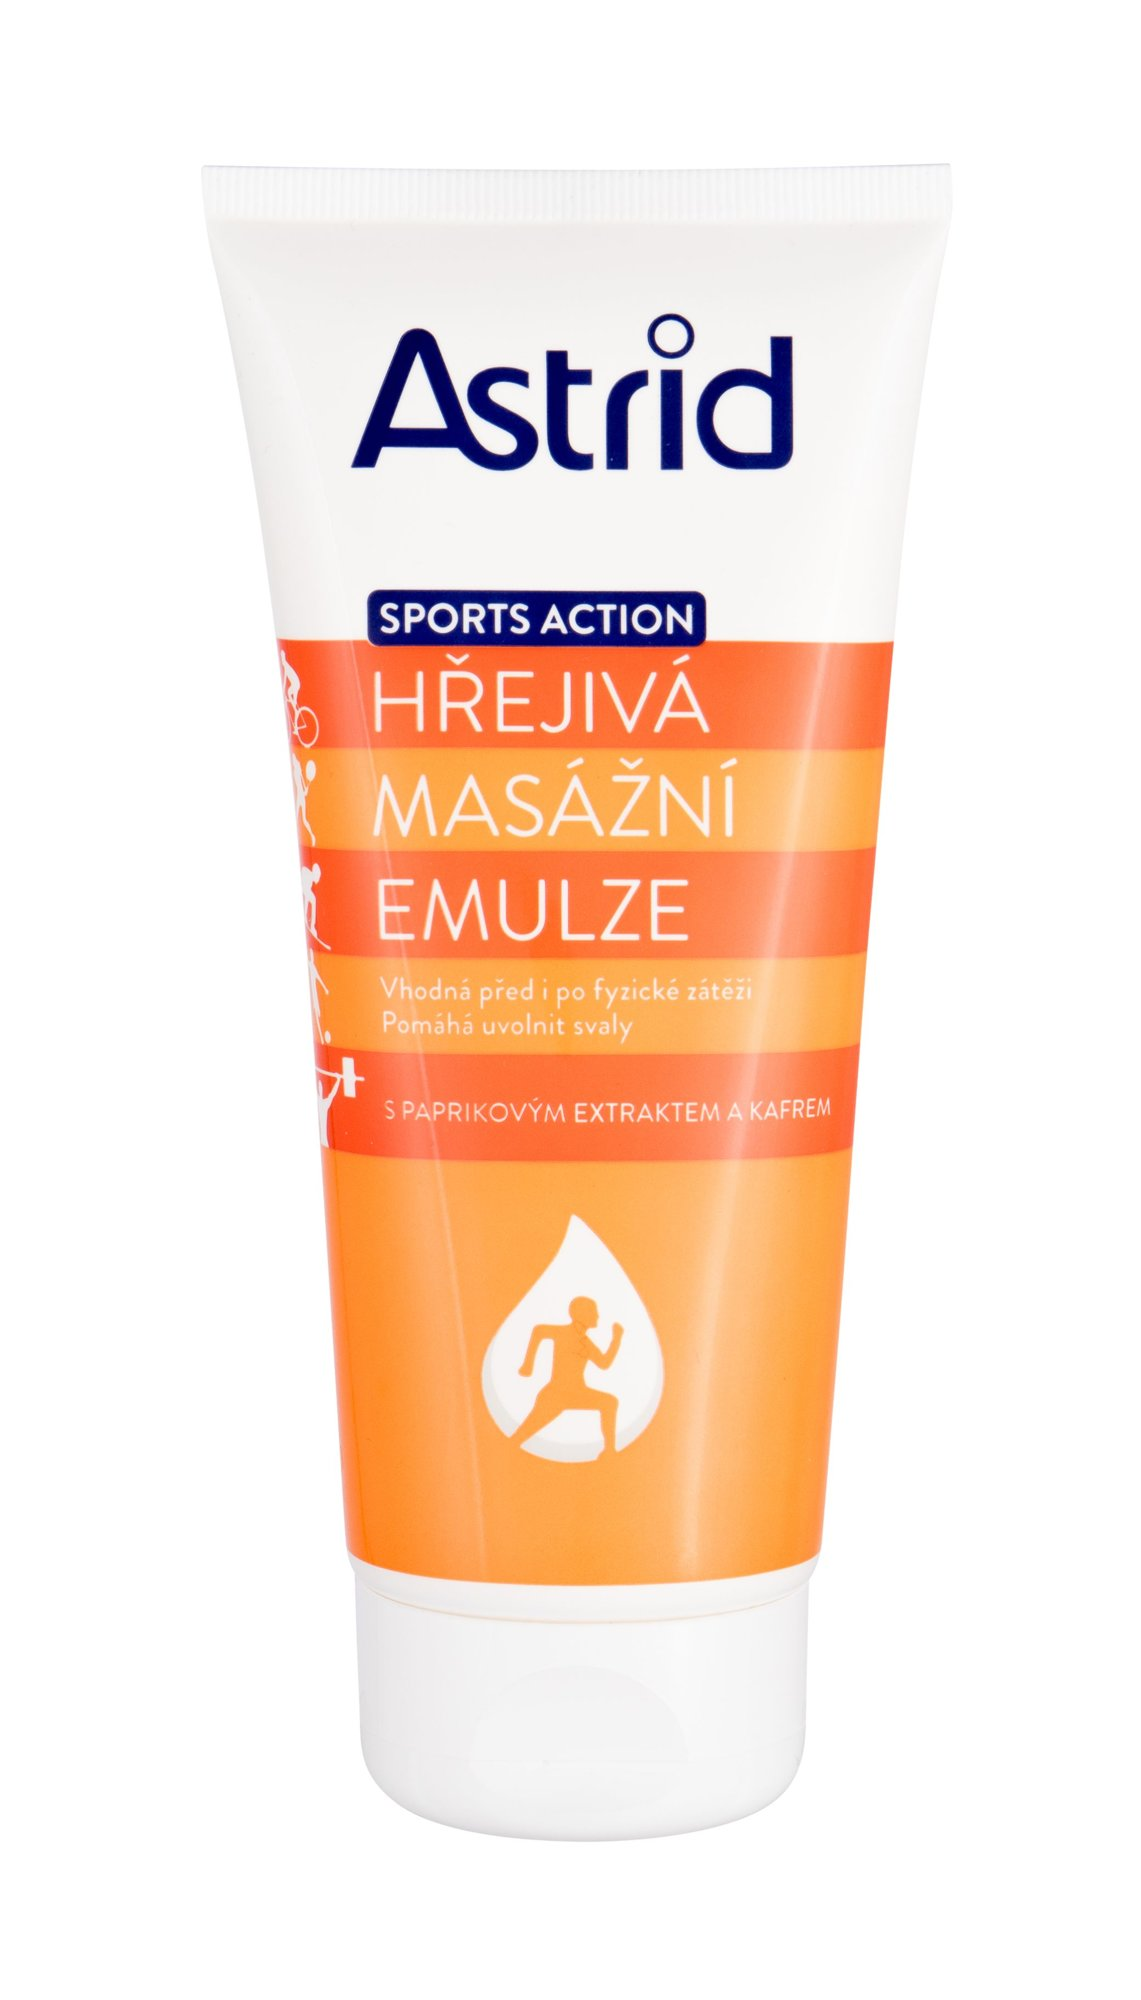 Astrid Sports Action For Massage 200ml